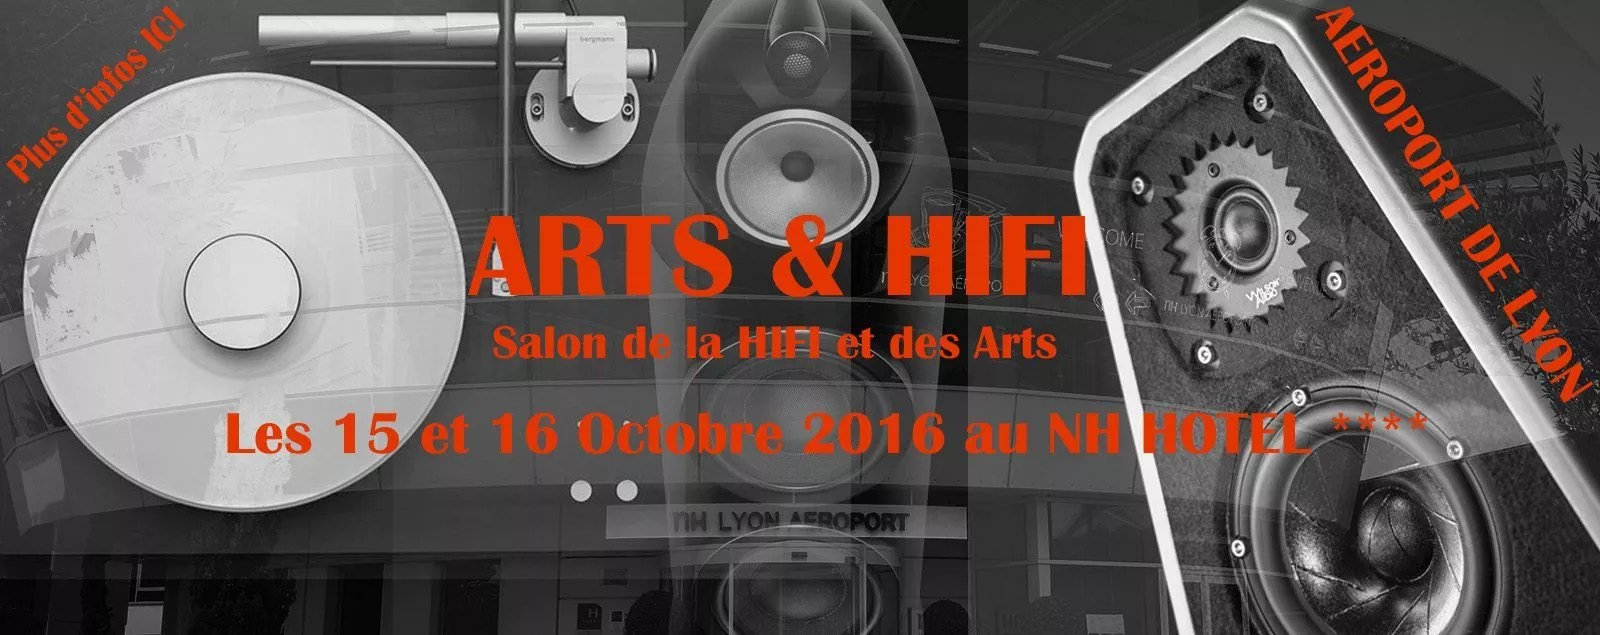 salon-arts-et-hifi-2016